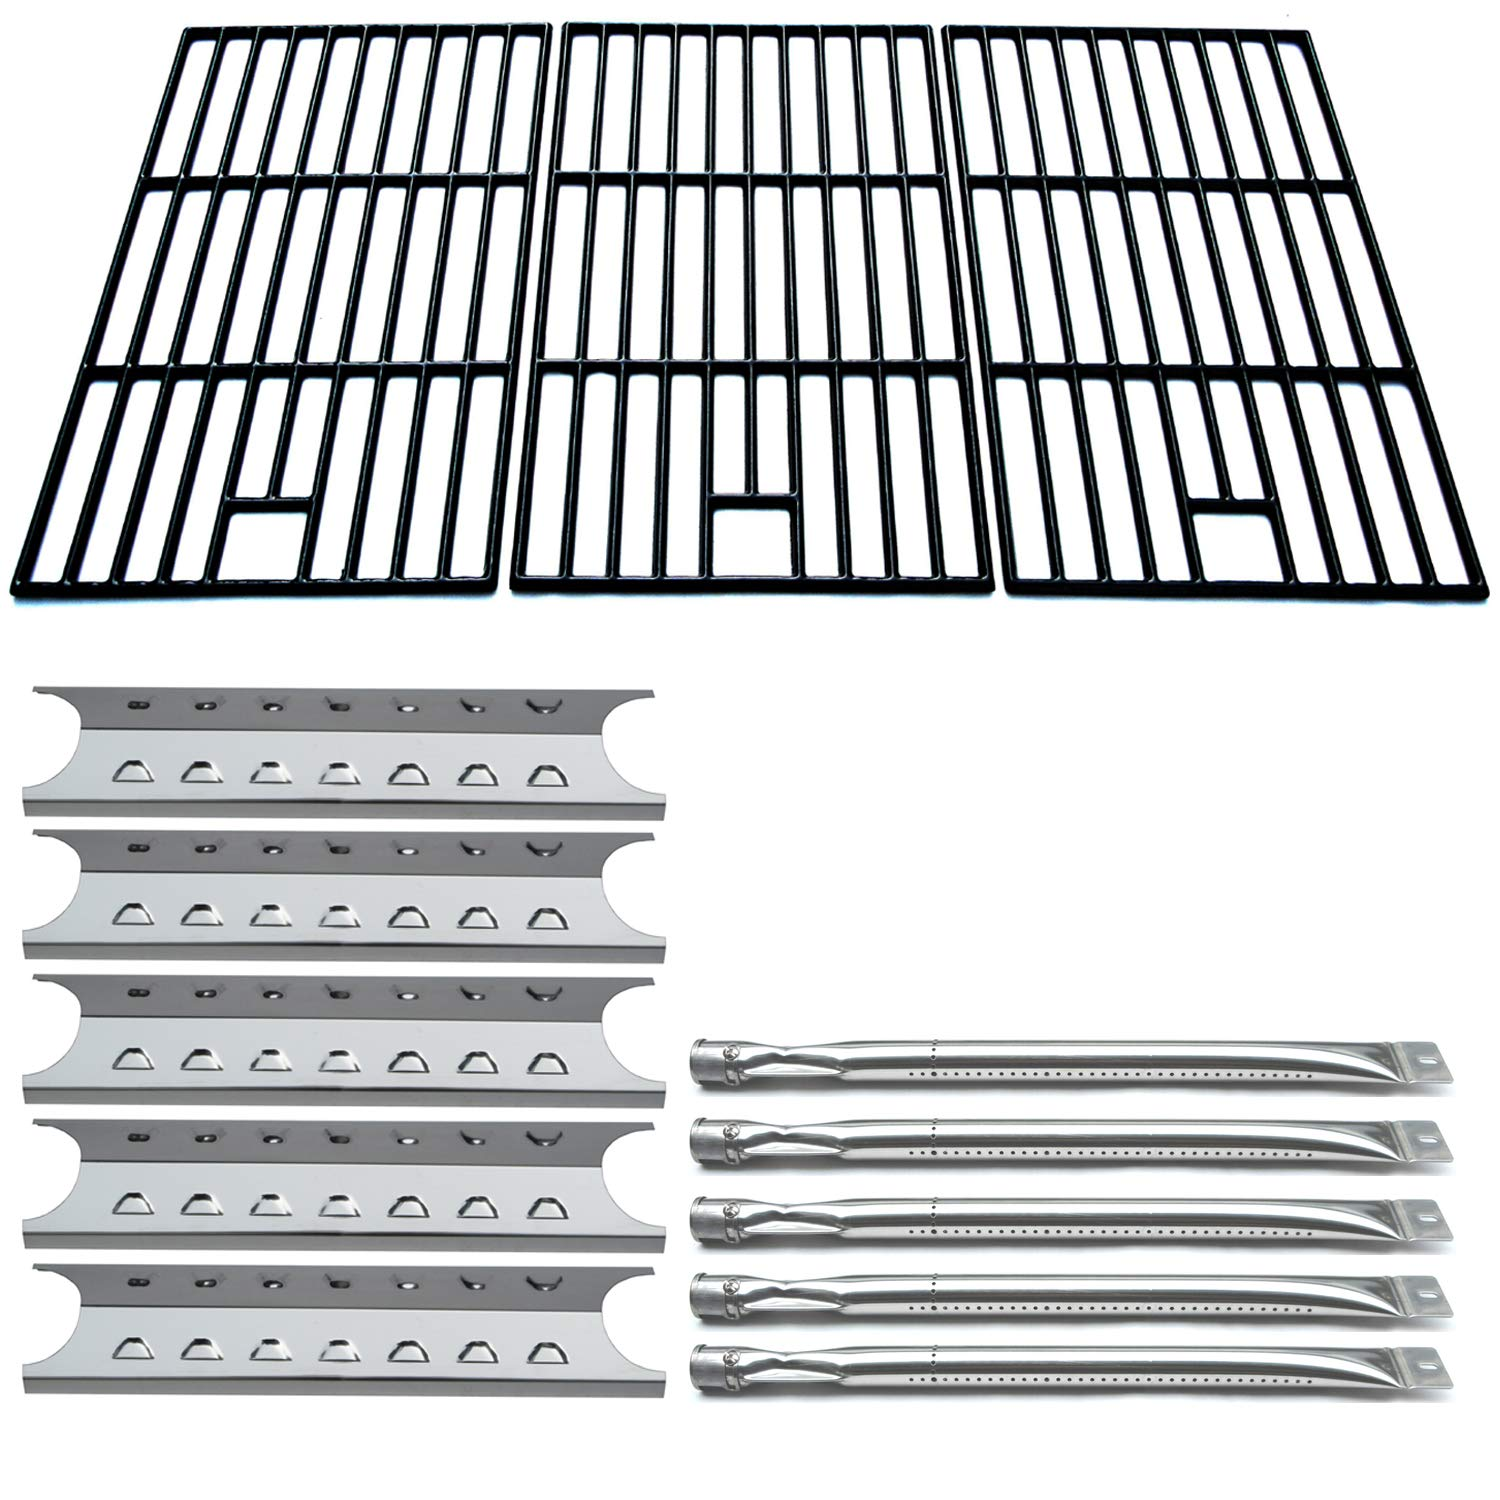 Direct store Parts Kit DG195 Replacement Master Forge 5 Burner Gas Grill L3218, 3218LTN Grill Repair Kit Burner,Heat Plate ,Cooking Grid